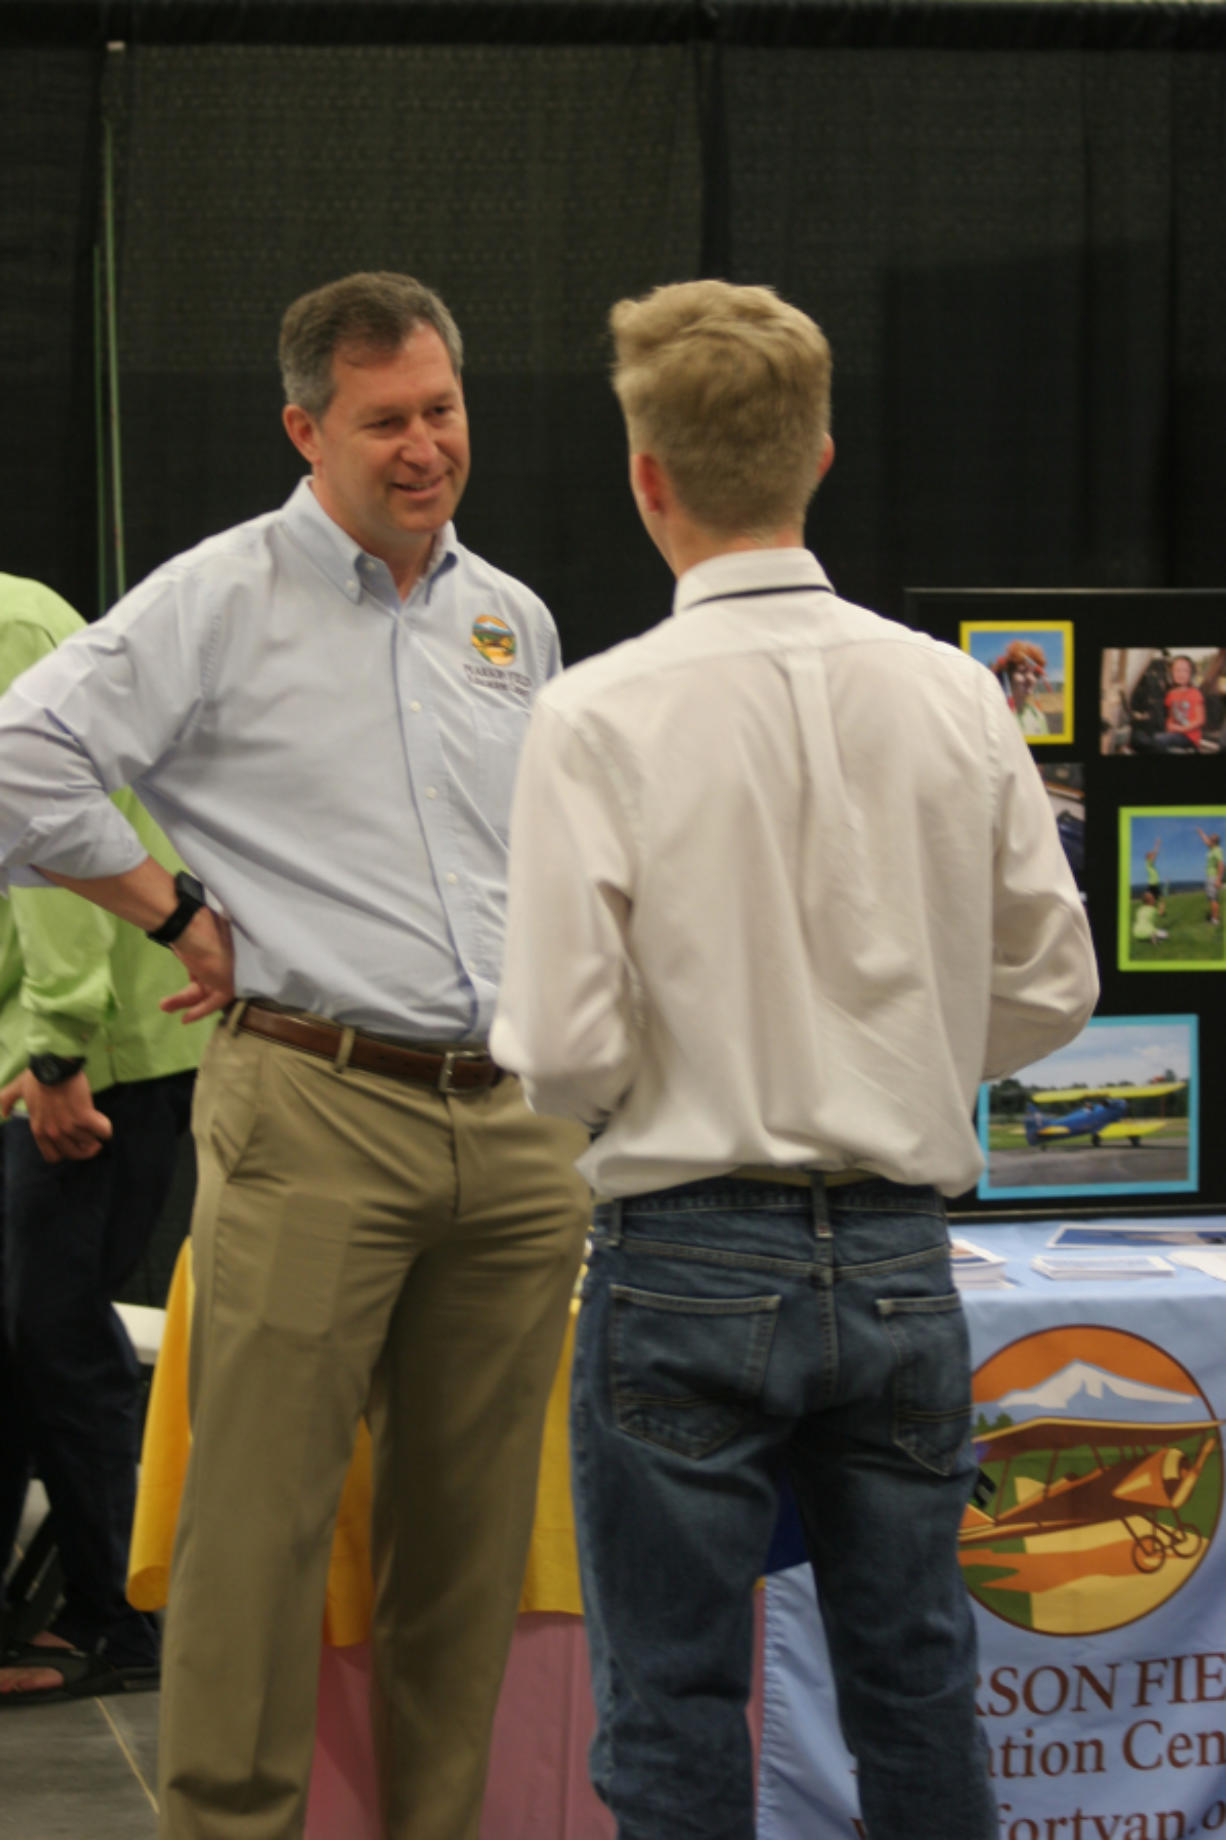 Ridgefield: A representative from the Pearson Field Education Center talks to a student at a Youth Employment Summit at the Clark County Event Center at the Fairgrounds on May 23, where teenagers learned about summer employment options, practiced mock interviews and applied for jobs.